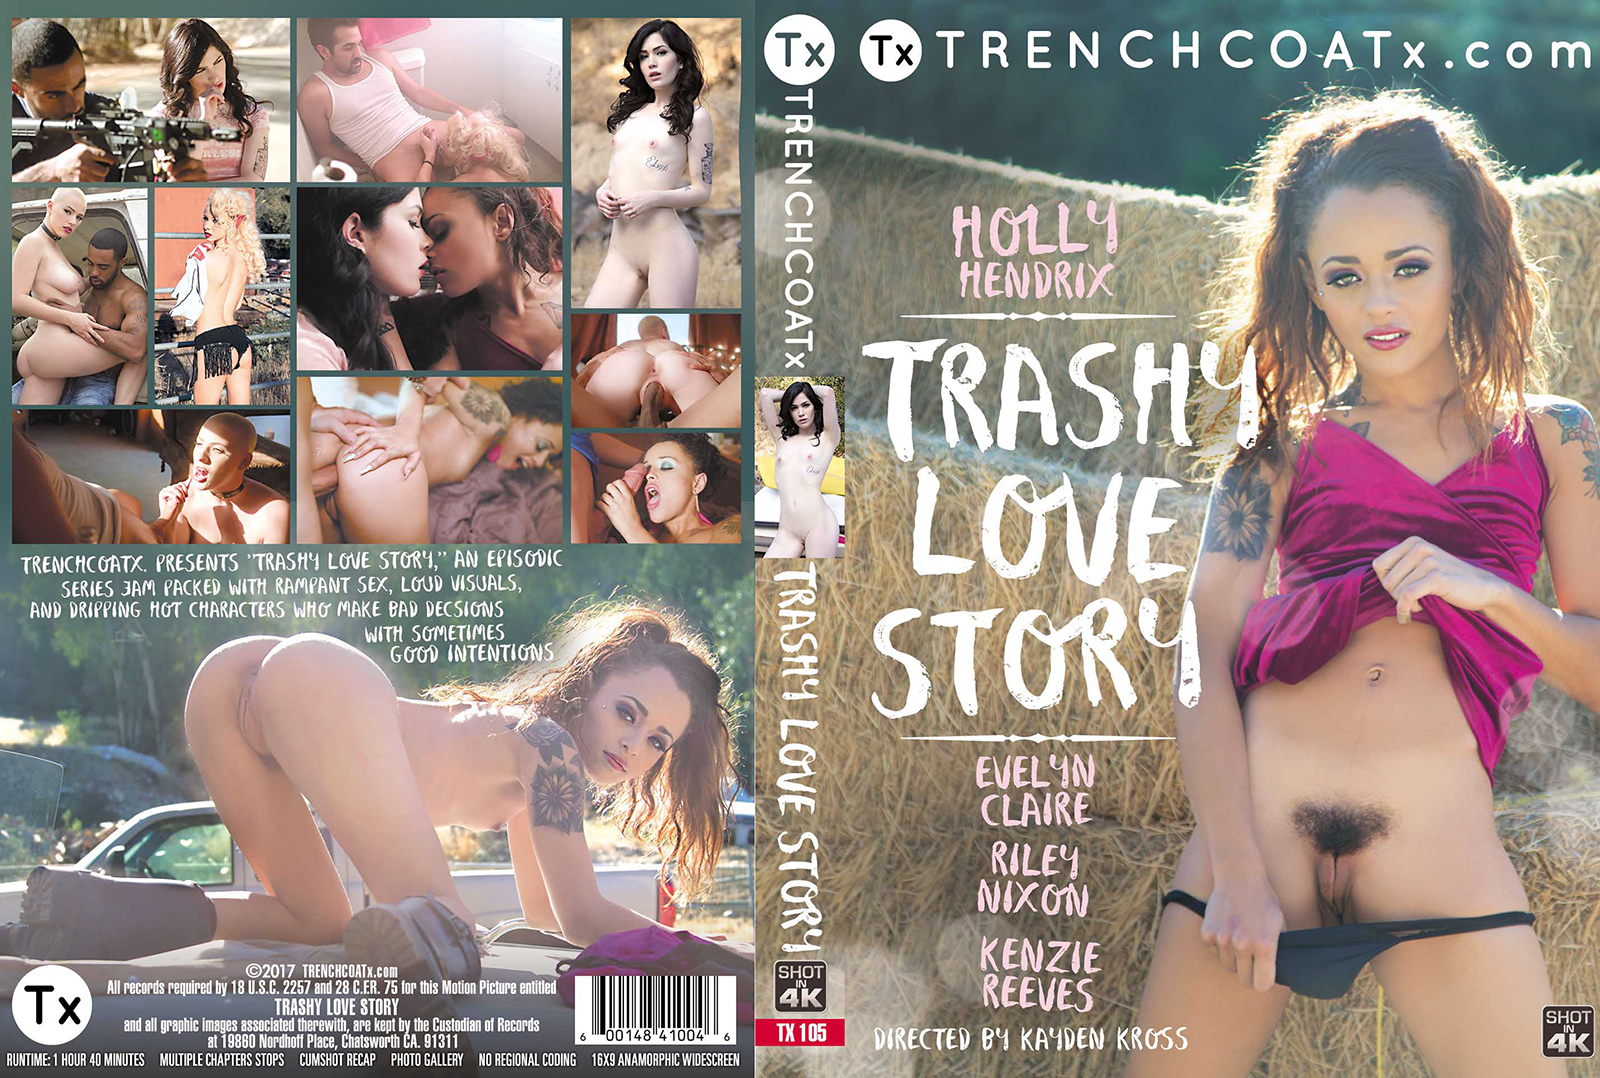 Trashy Love Story DVD